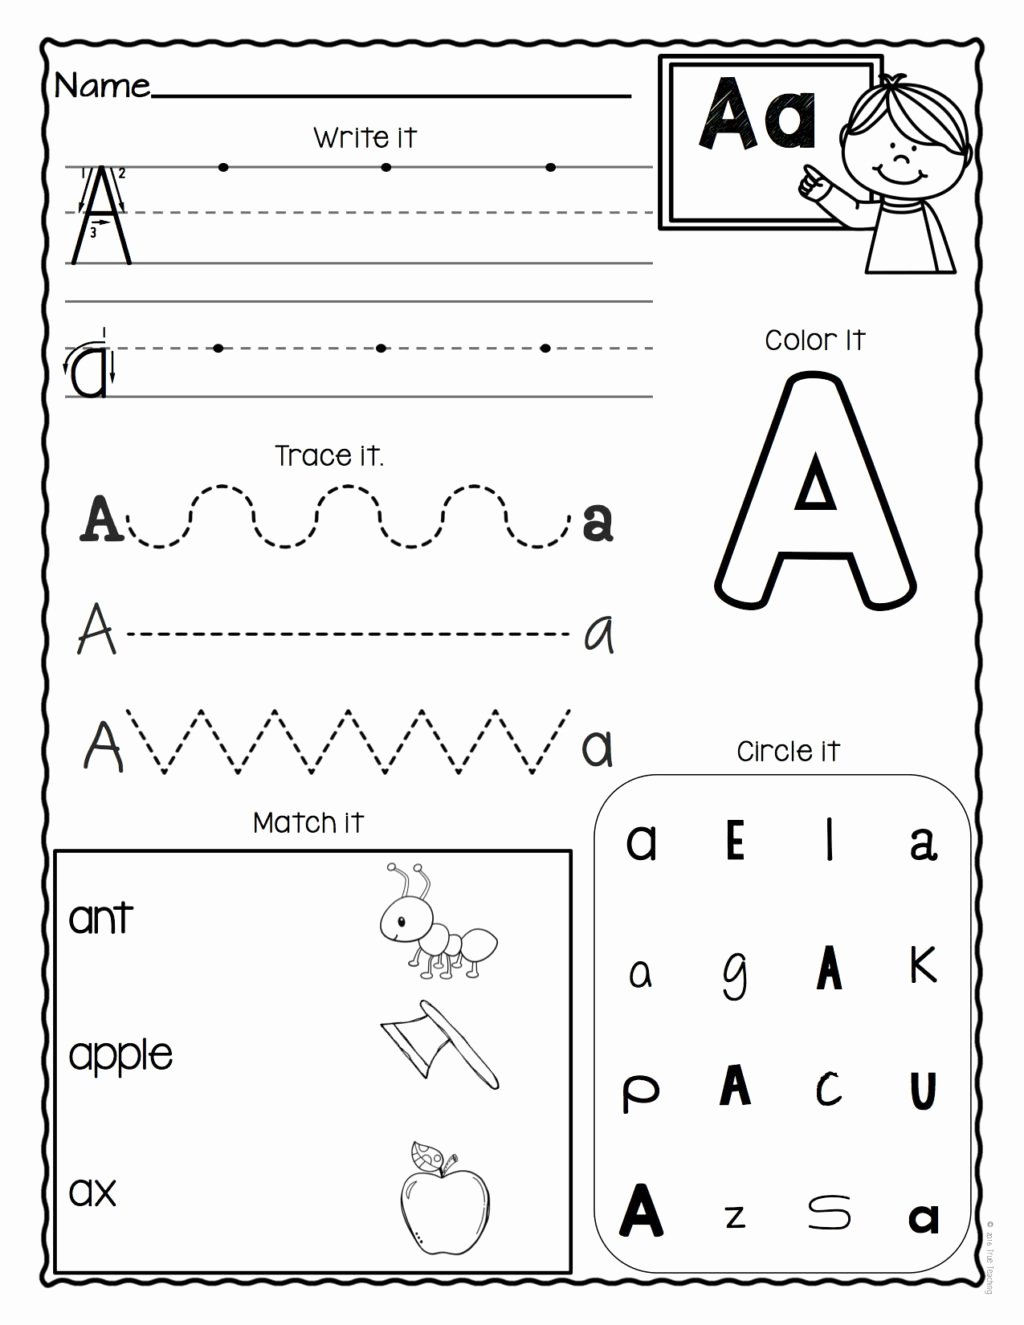 Printable Letter A Worksheets for Preschoolers top Worksheet Worksheetool Letter Worksheets Z Set for Free